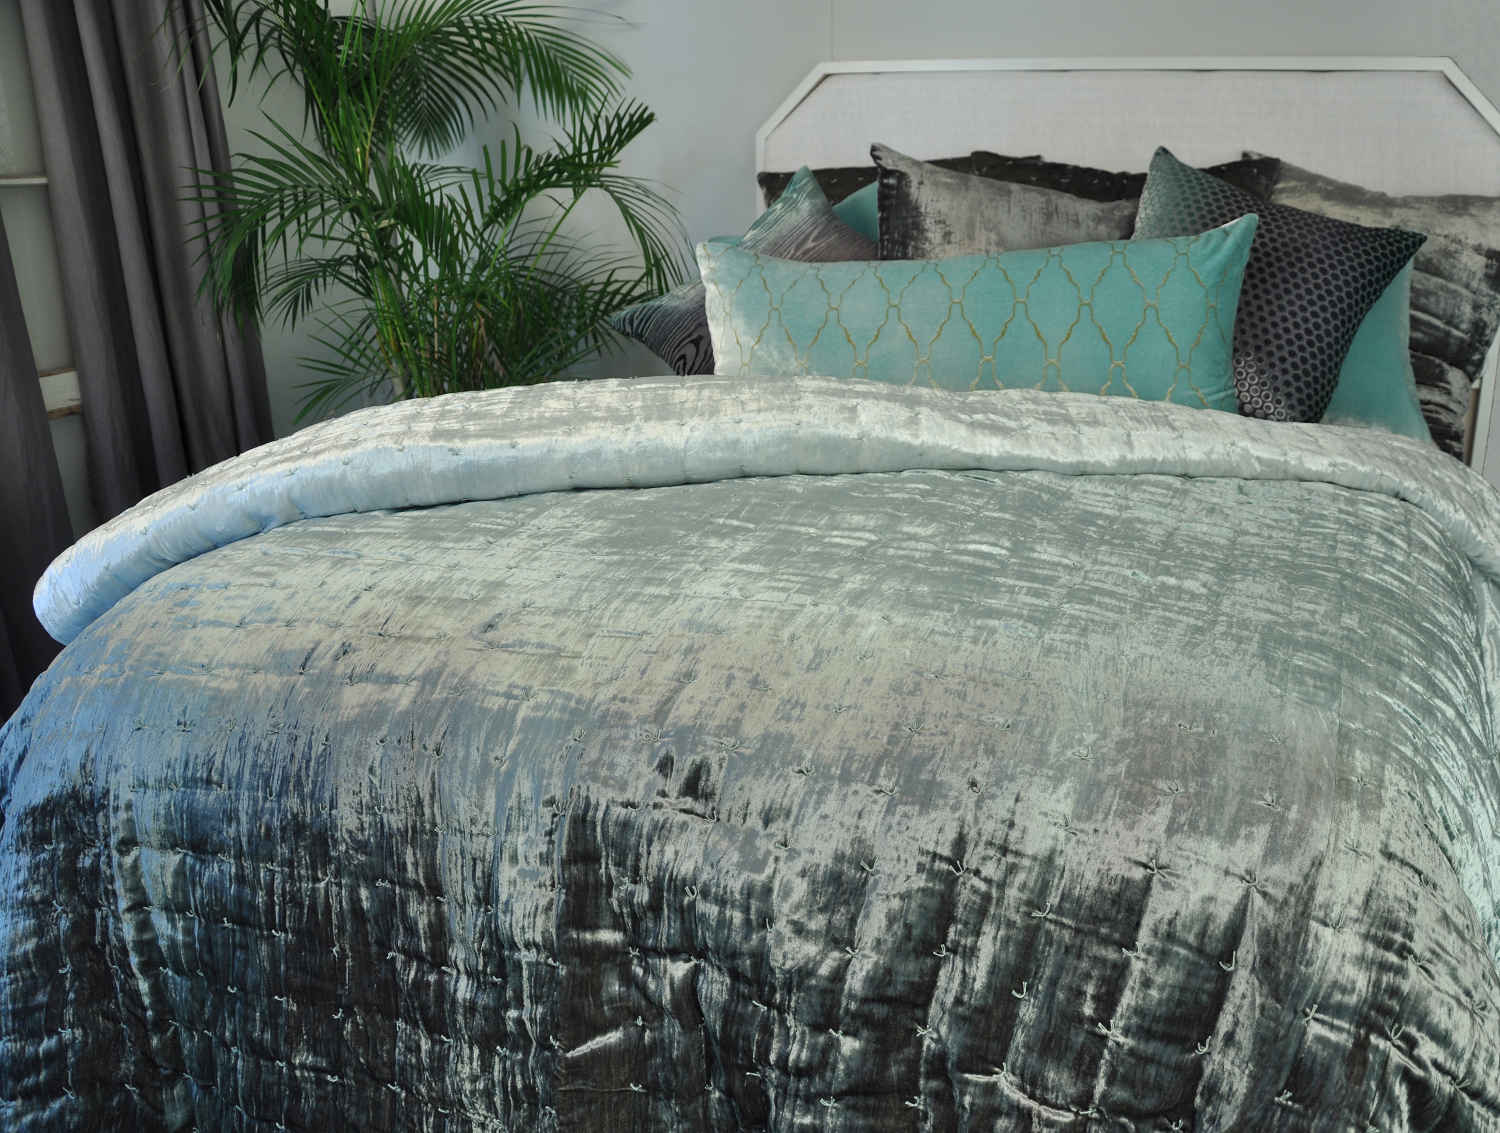 DefiningElegance.com Presents Kevin Ou0027Brien Studio Knotted Velvet Bedding.